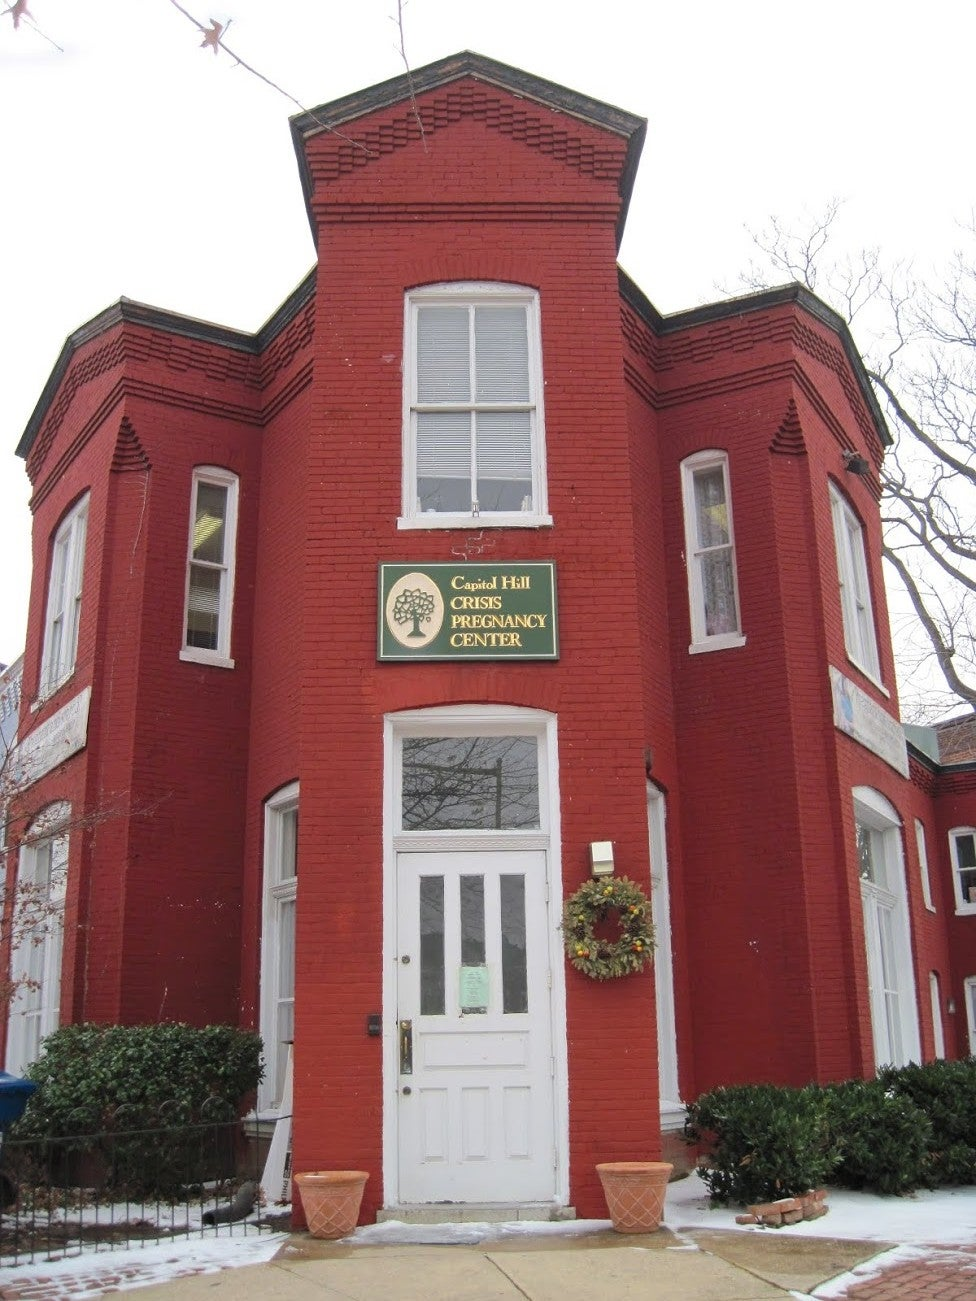 A front view of the Capitol Hill Crisis Pregnancy Center.